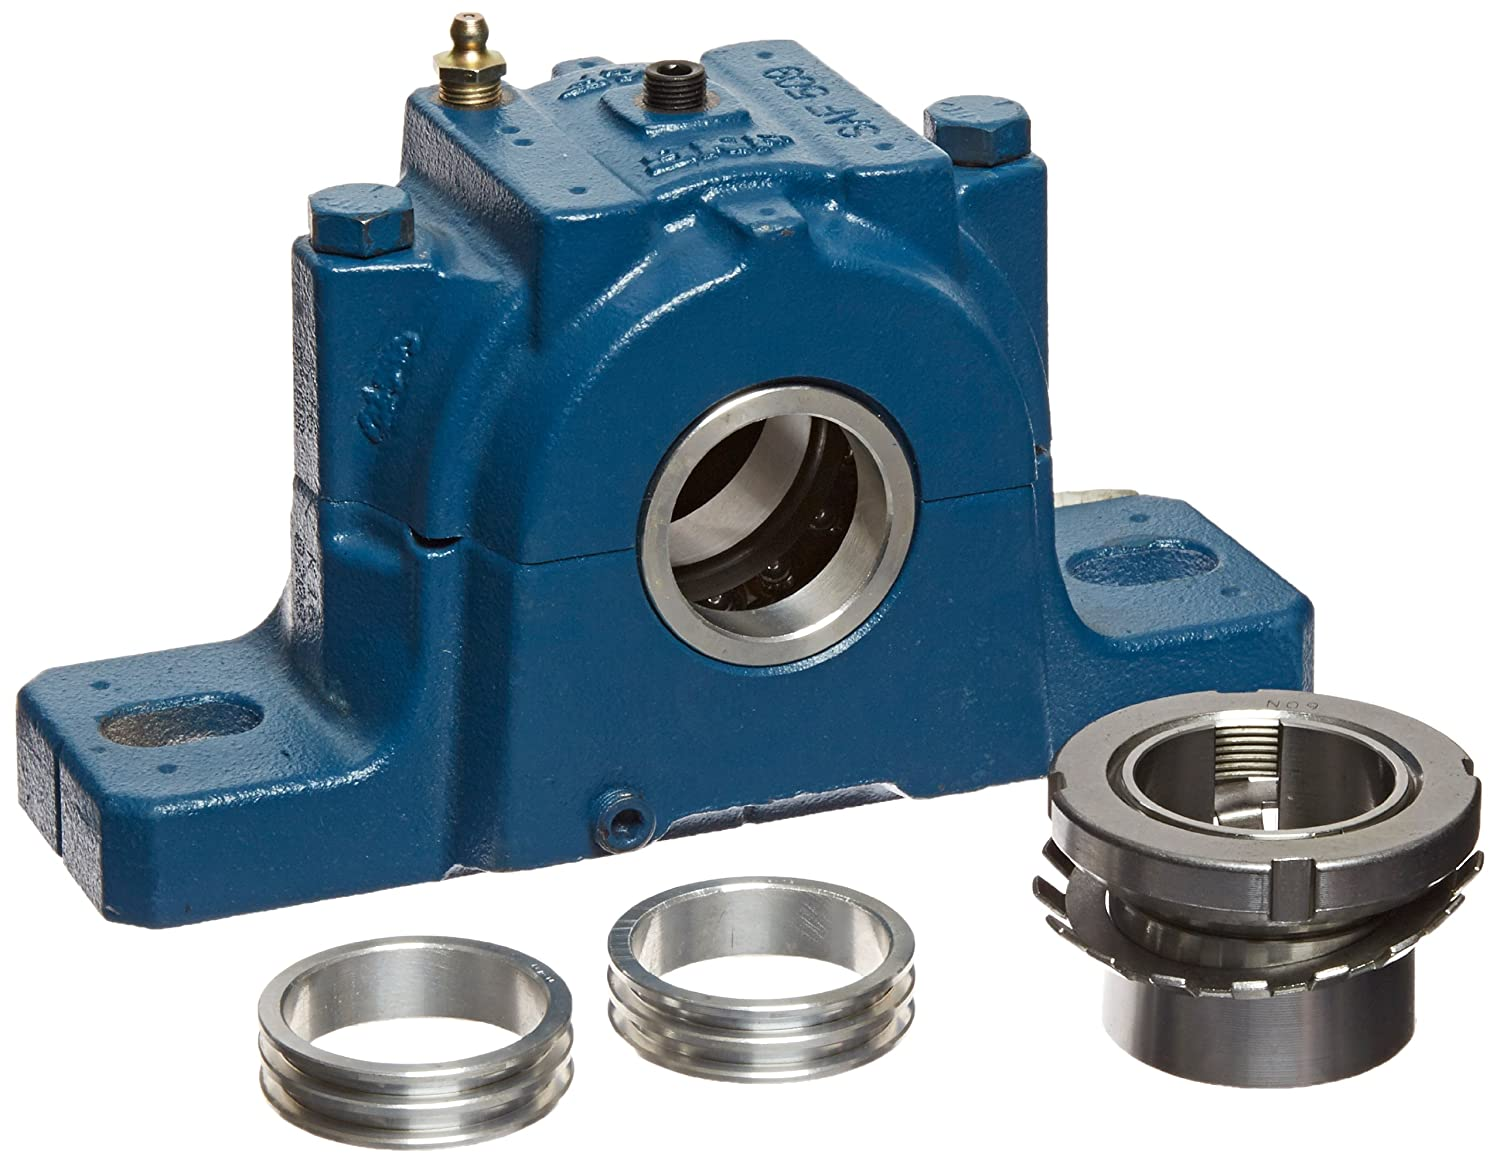 SKF SAF 1509X1.1 2 Ball Bearing Pillow Block 2 Bolts Adapter Mount Non Expansion Type Labyrinth Seals Cast Iron Inch 1 1 2 Bore 2 1 4 Base To Center Height 6 5 8 Bolt Hole Spacing Width